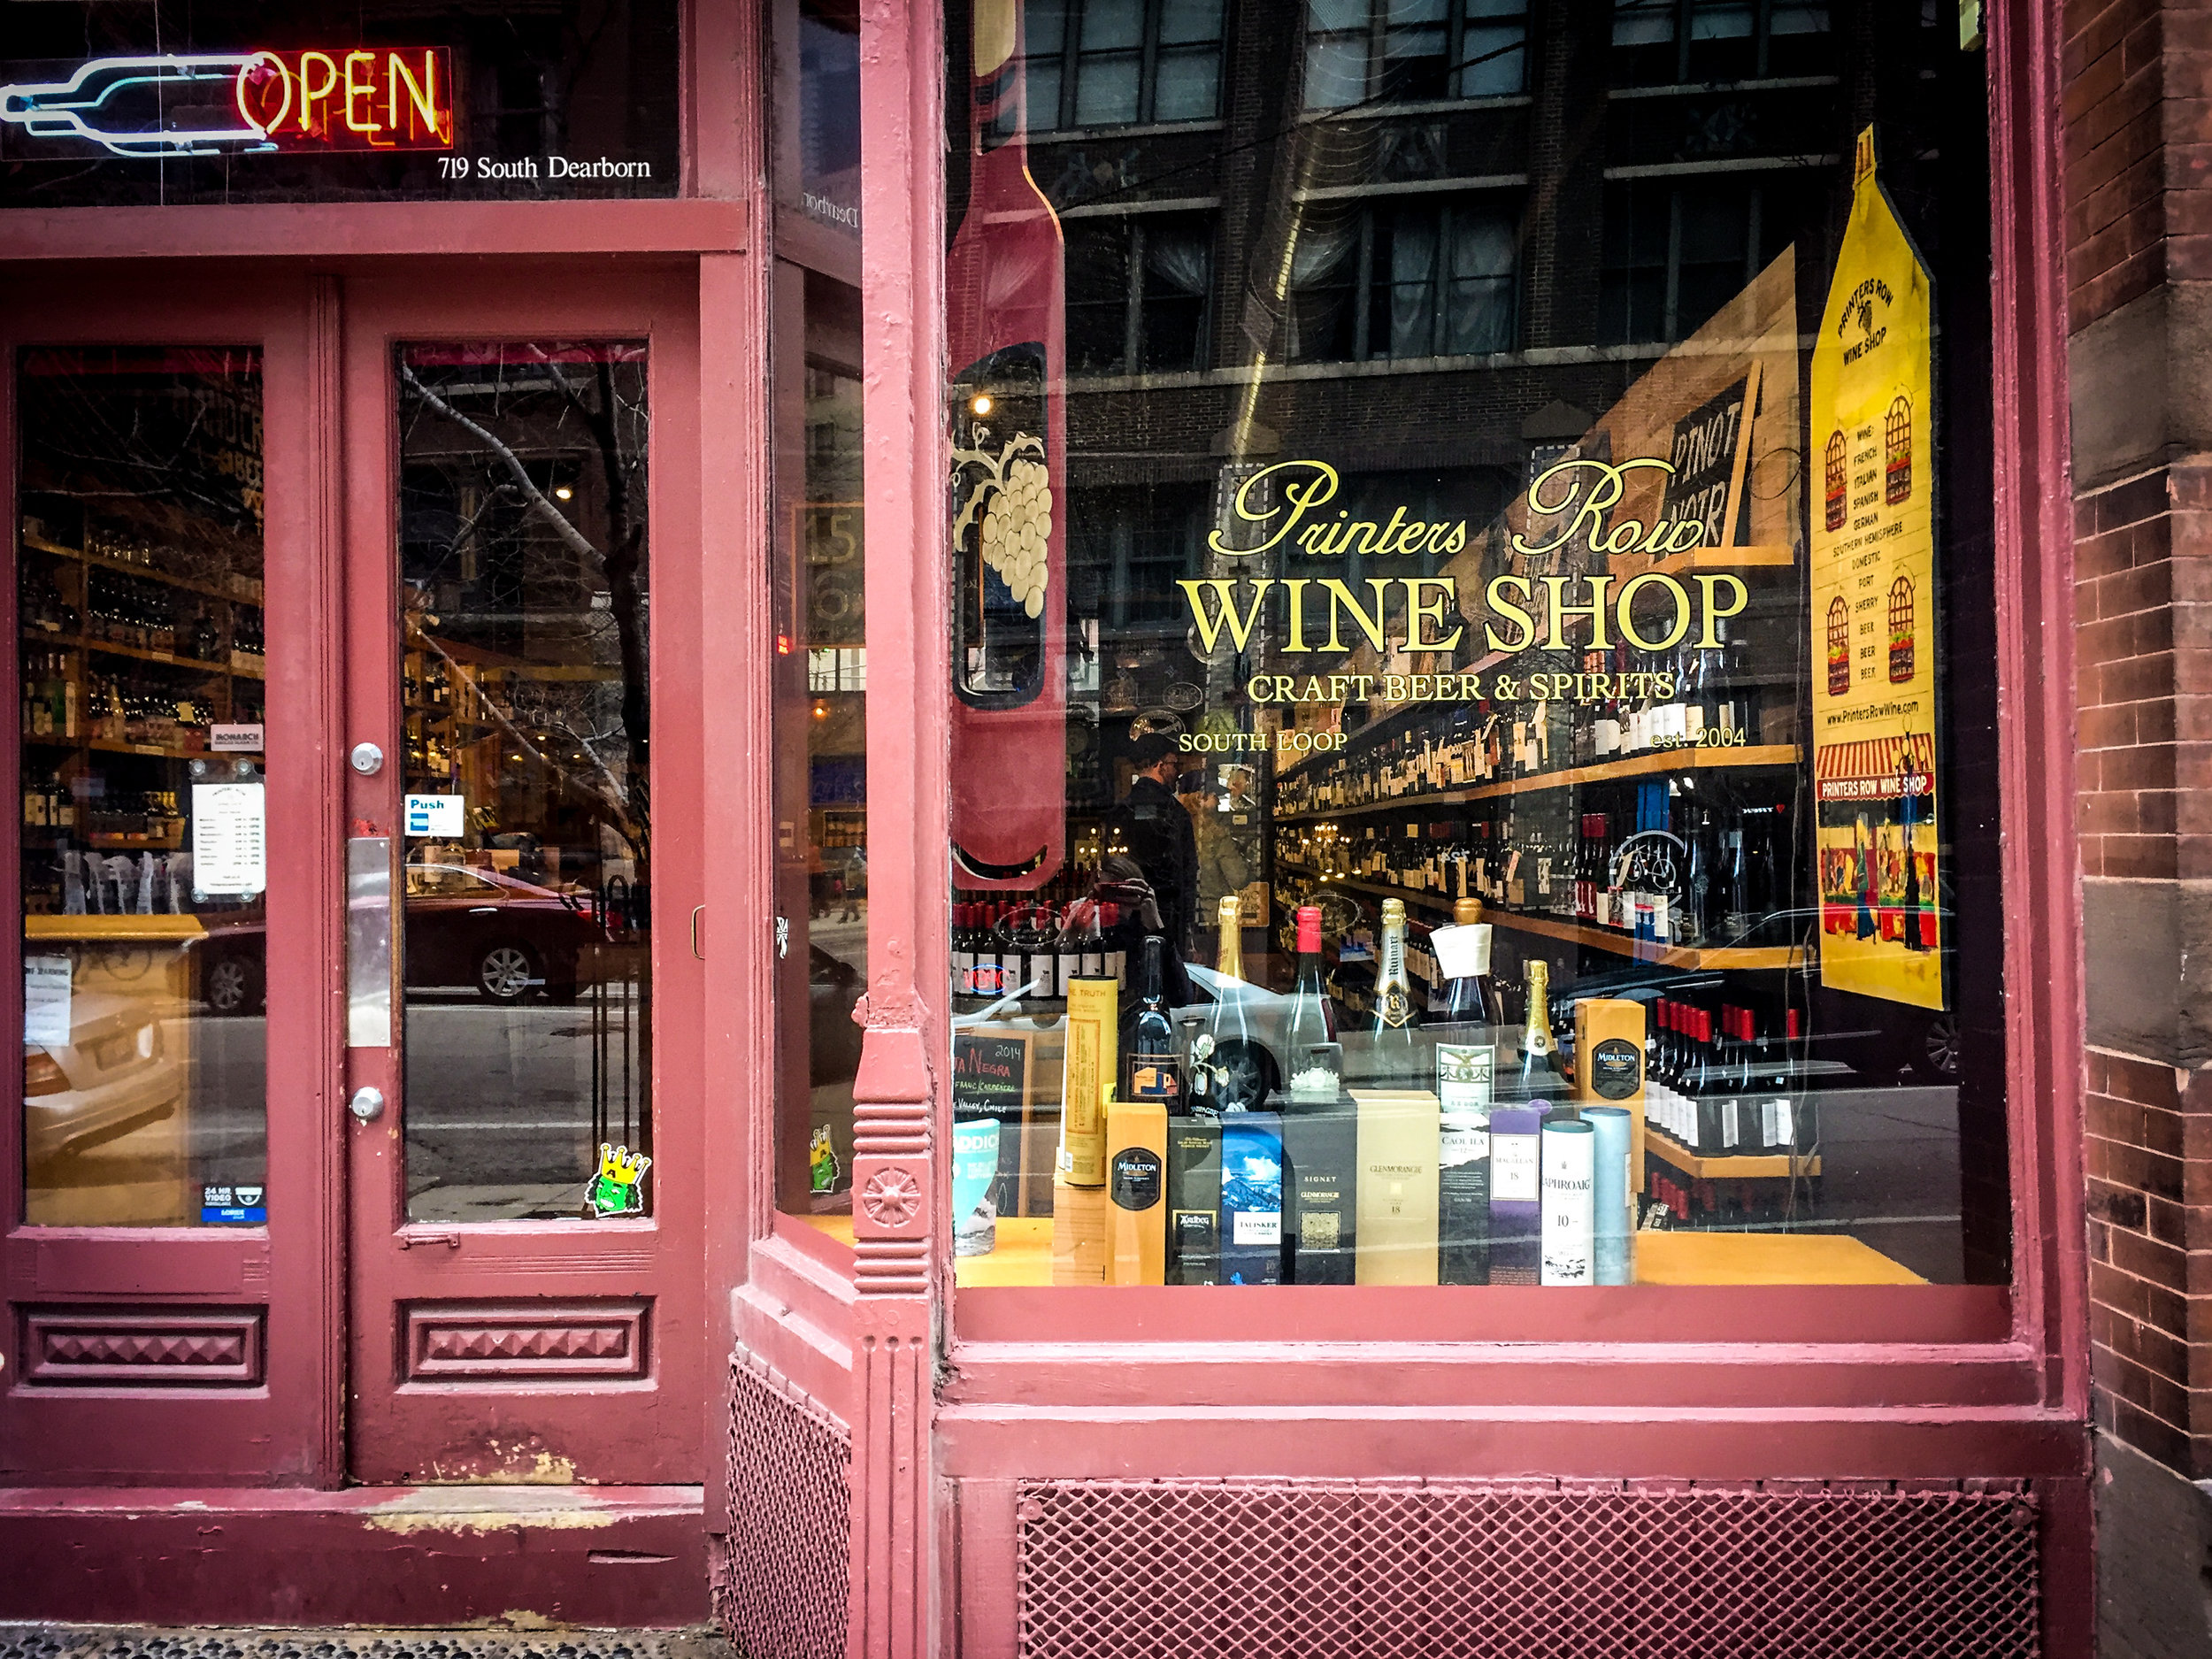 Printers Row Wine Shop